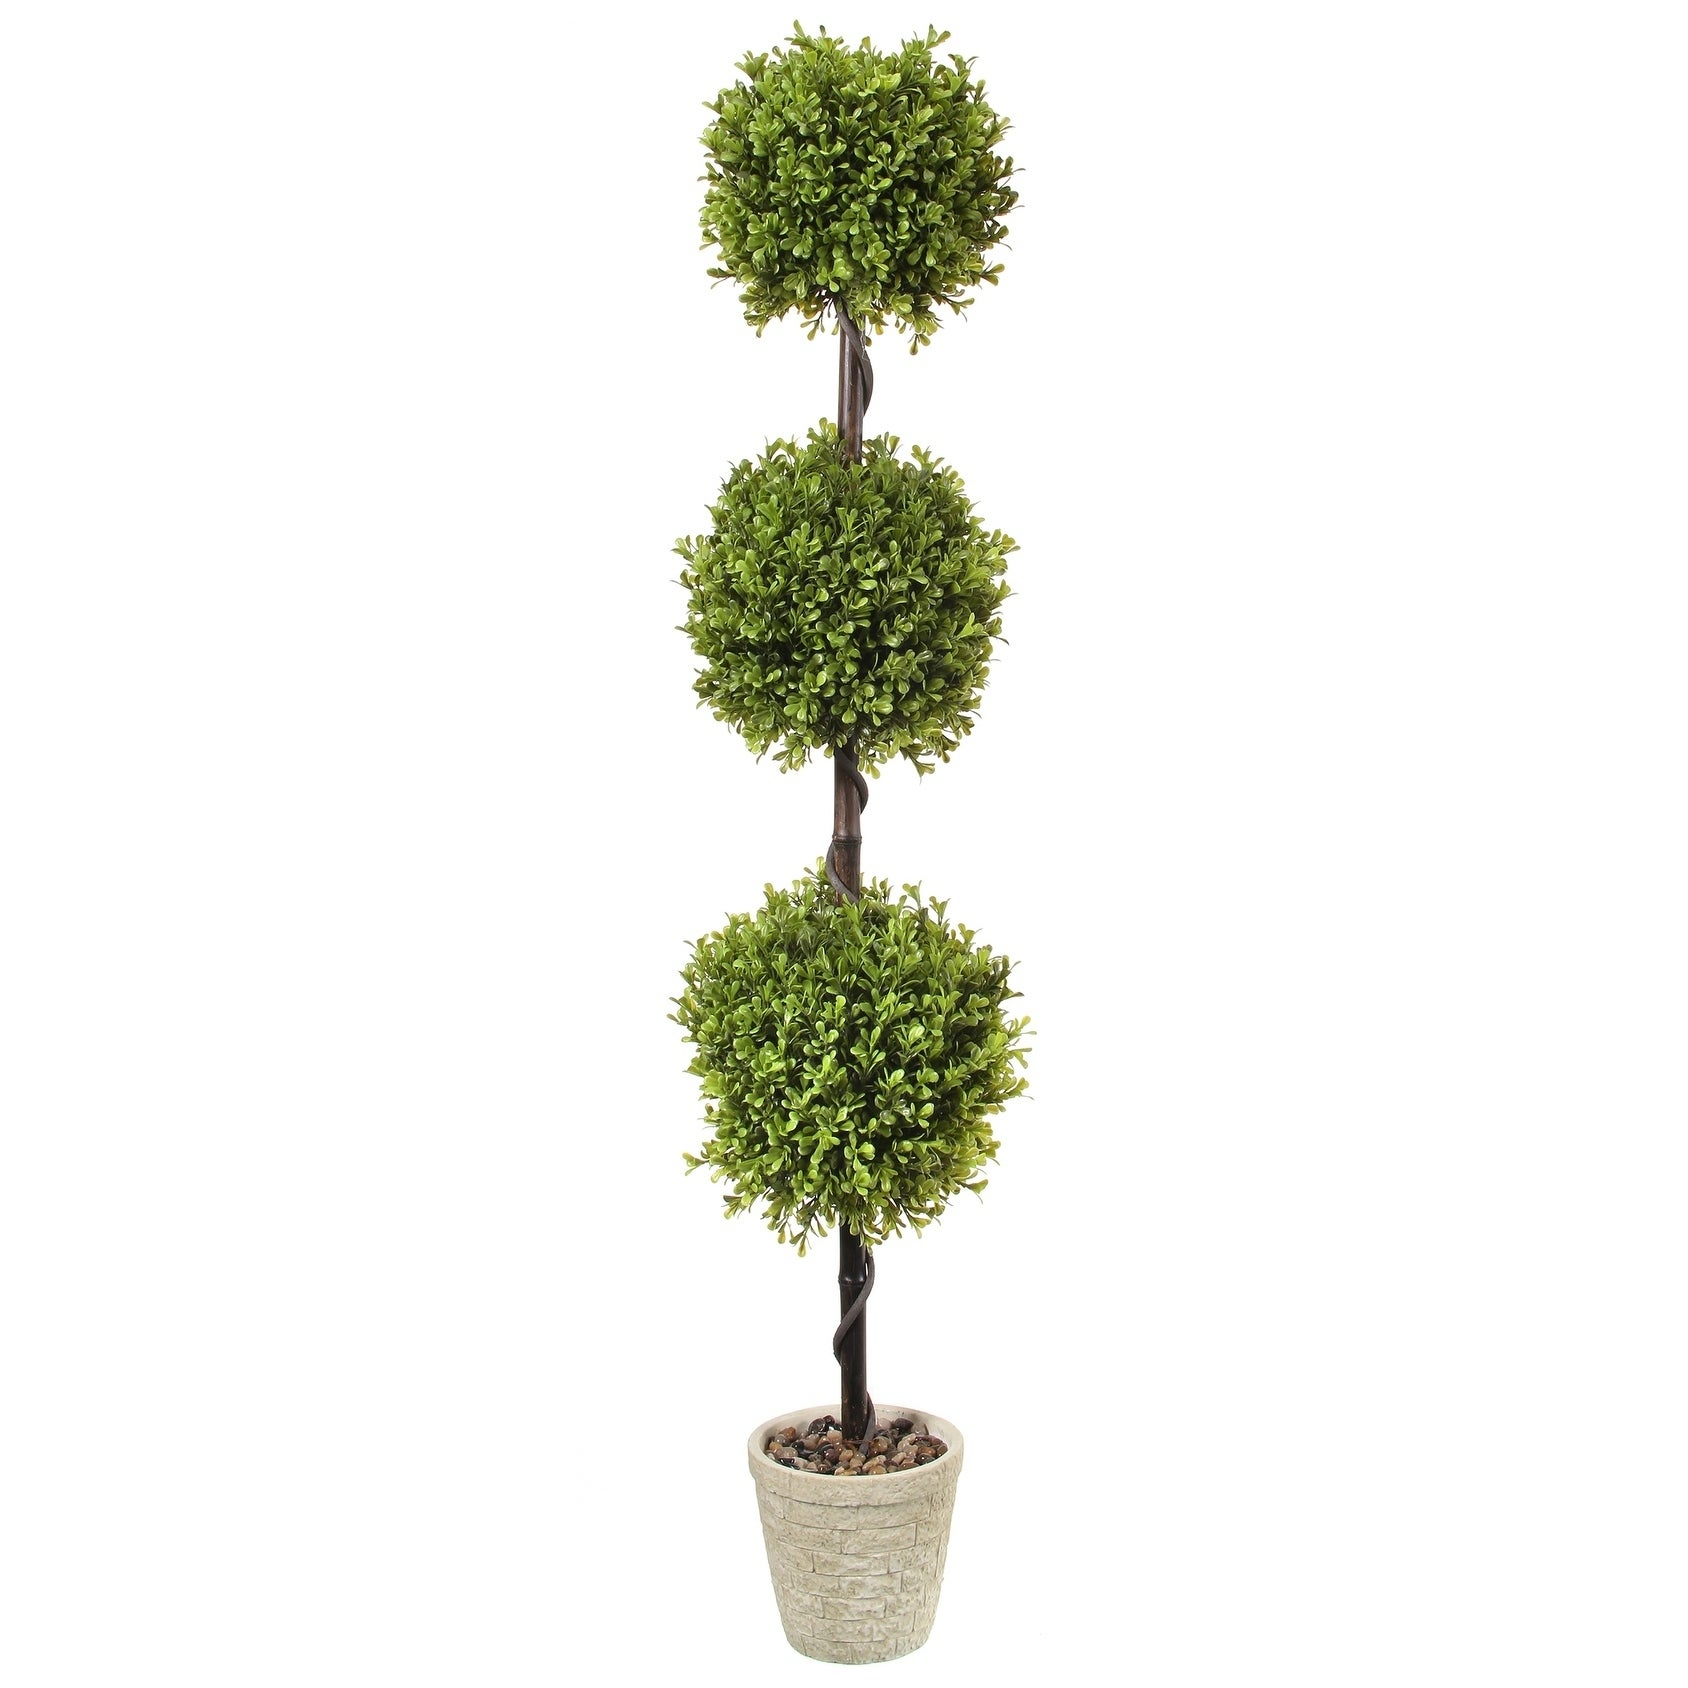 Spring Boxwood Triple Ball Topiary Potted 48 - Plastic and Cement